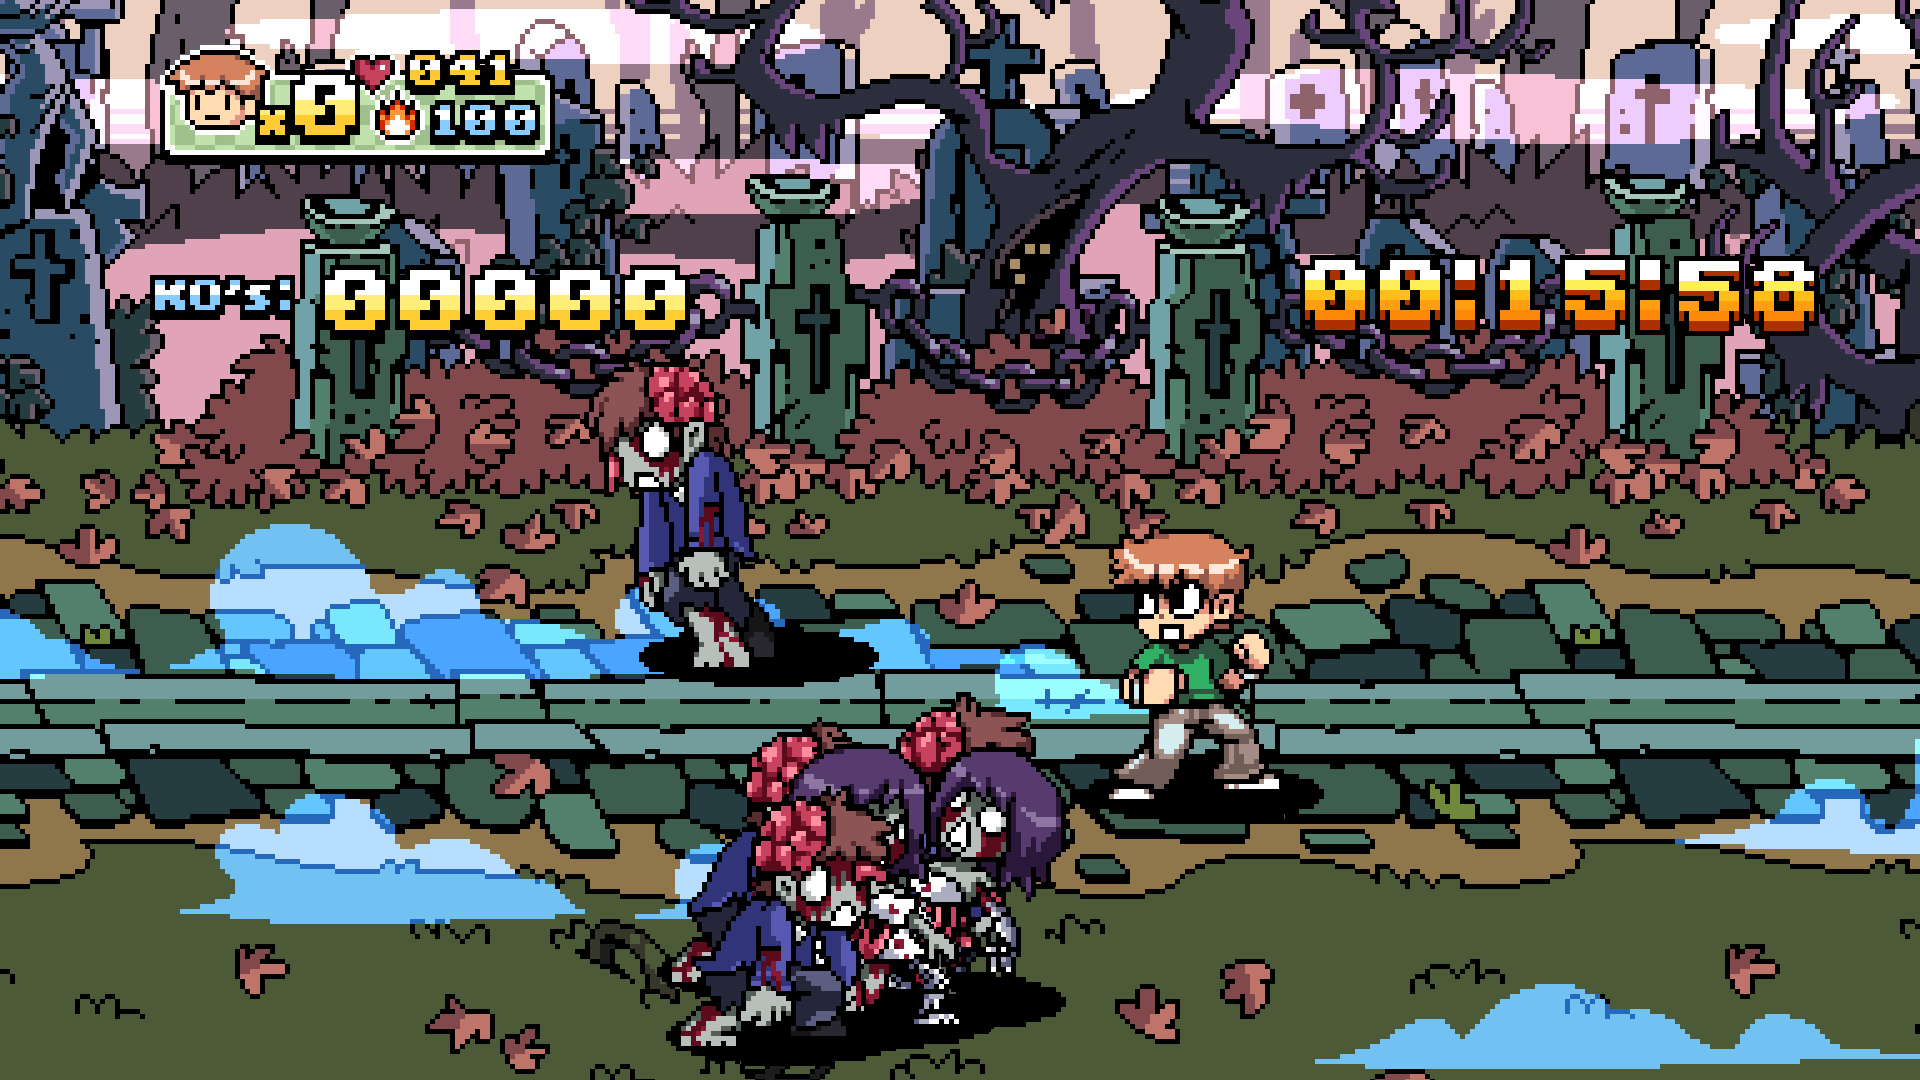 1kvcw9oip5_scott-pilgrim-vs-the-world-the-game-complete-edition-1bfaa7e2-7492-4dc7-a602-a209177274bc.png